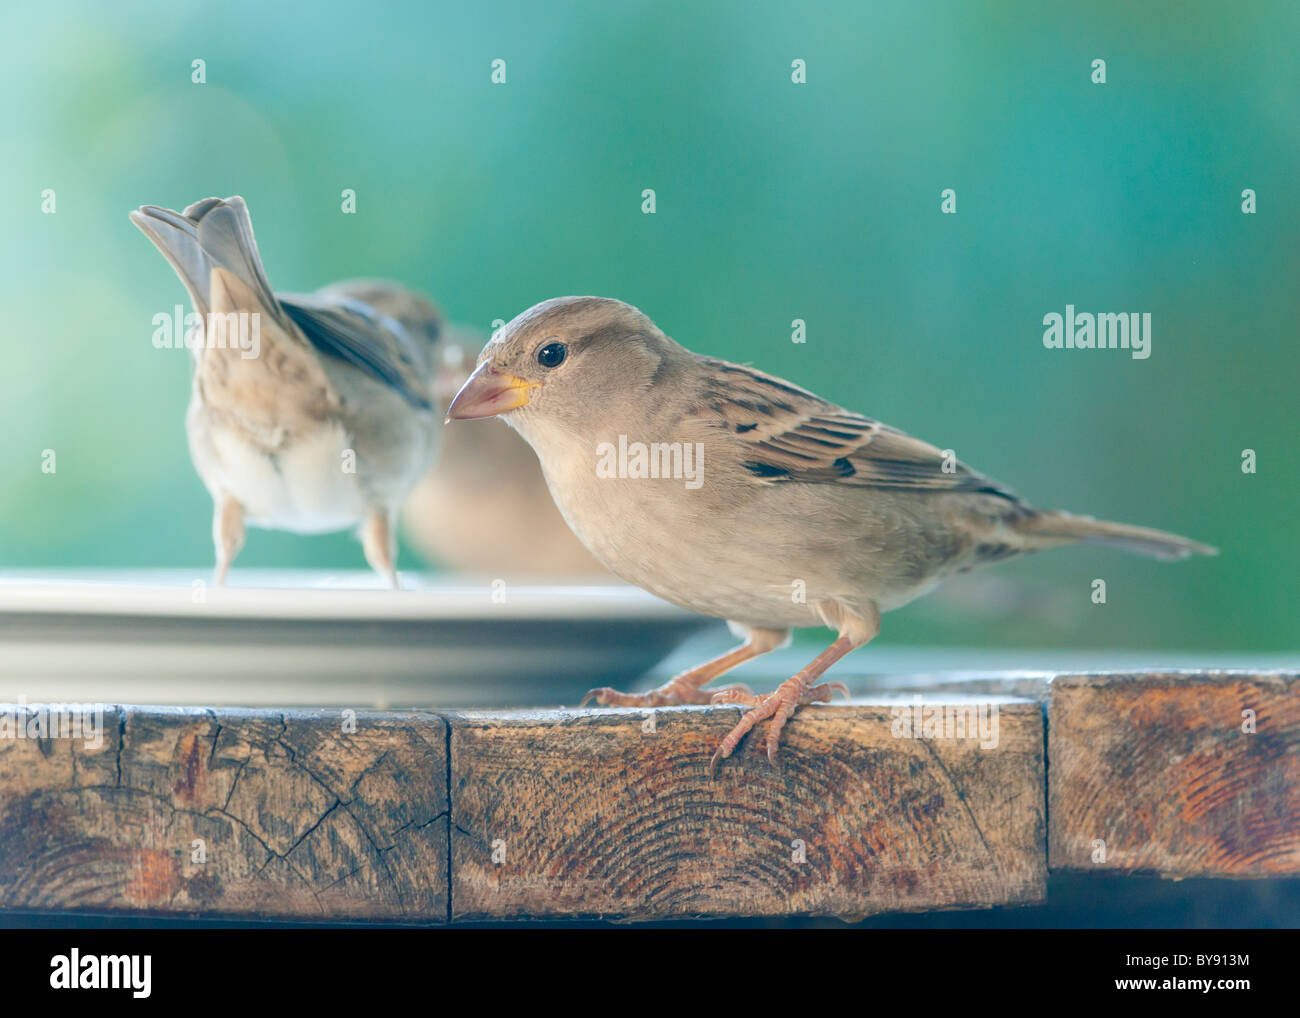 birds on a table - Stock Image